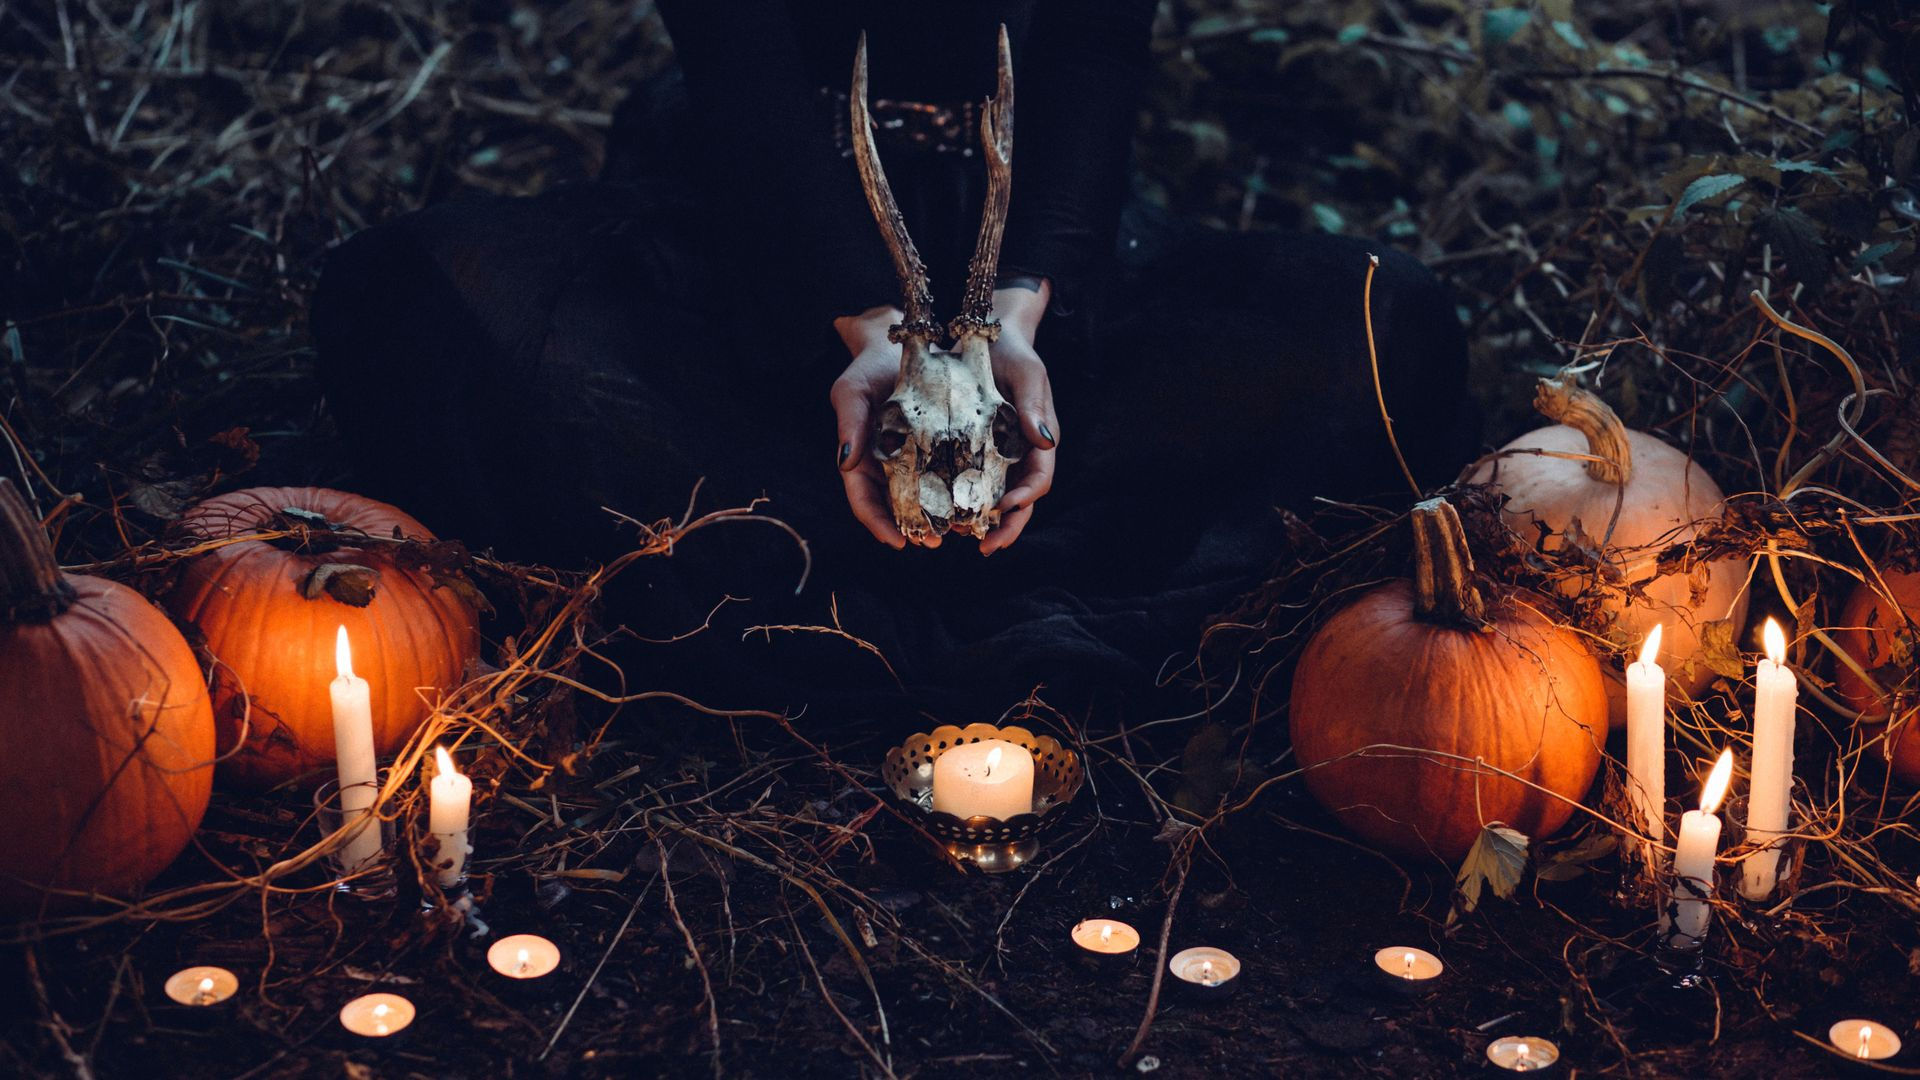 Woman Holding Skull with Horns and Halloween Pumpkins Wallpaper 1920x1080